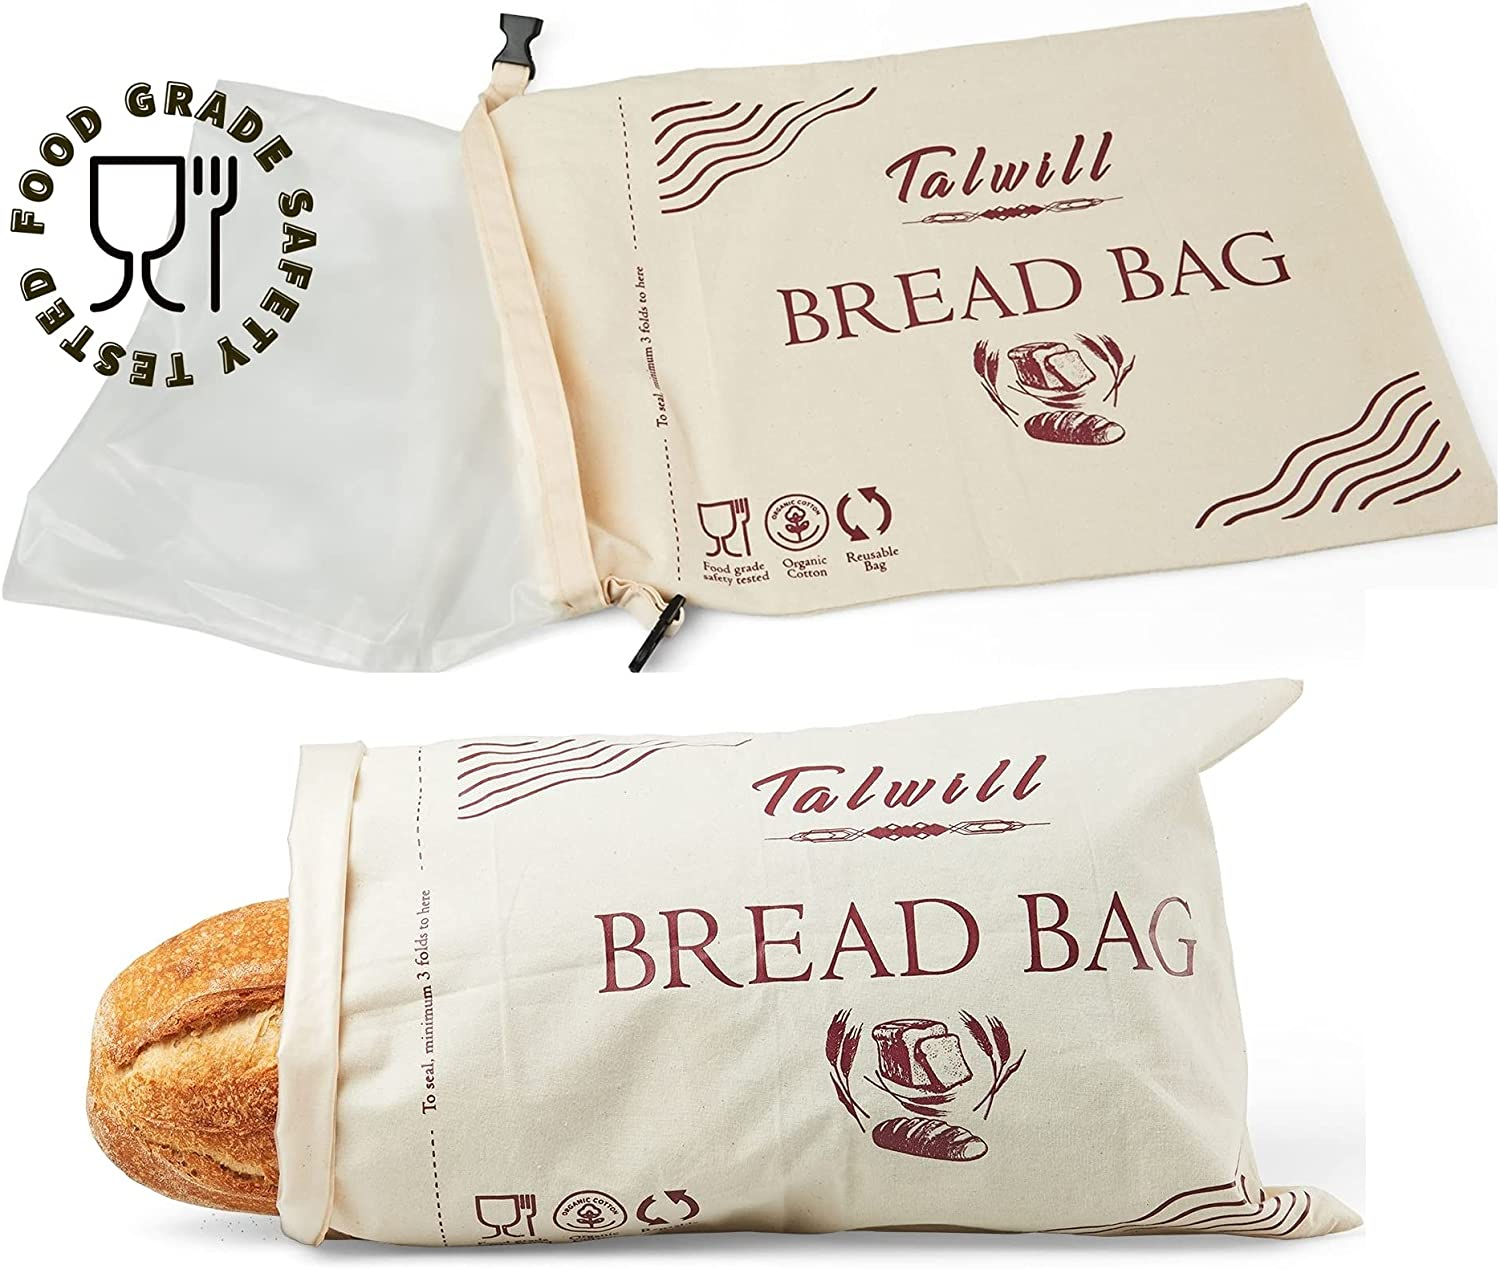 Bread Bag 2pcs set extra large reusable cotton bread bag washable double lined bread storage for Homemade Bread Food safety tested baker baking gift (Pack of 2)